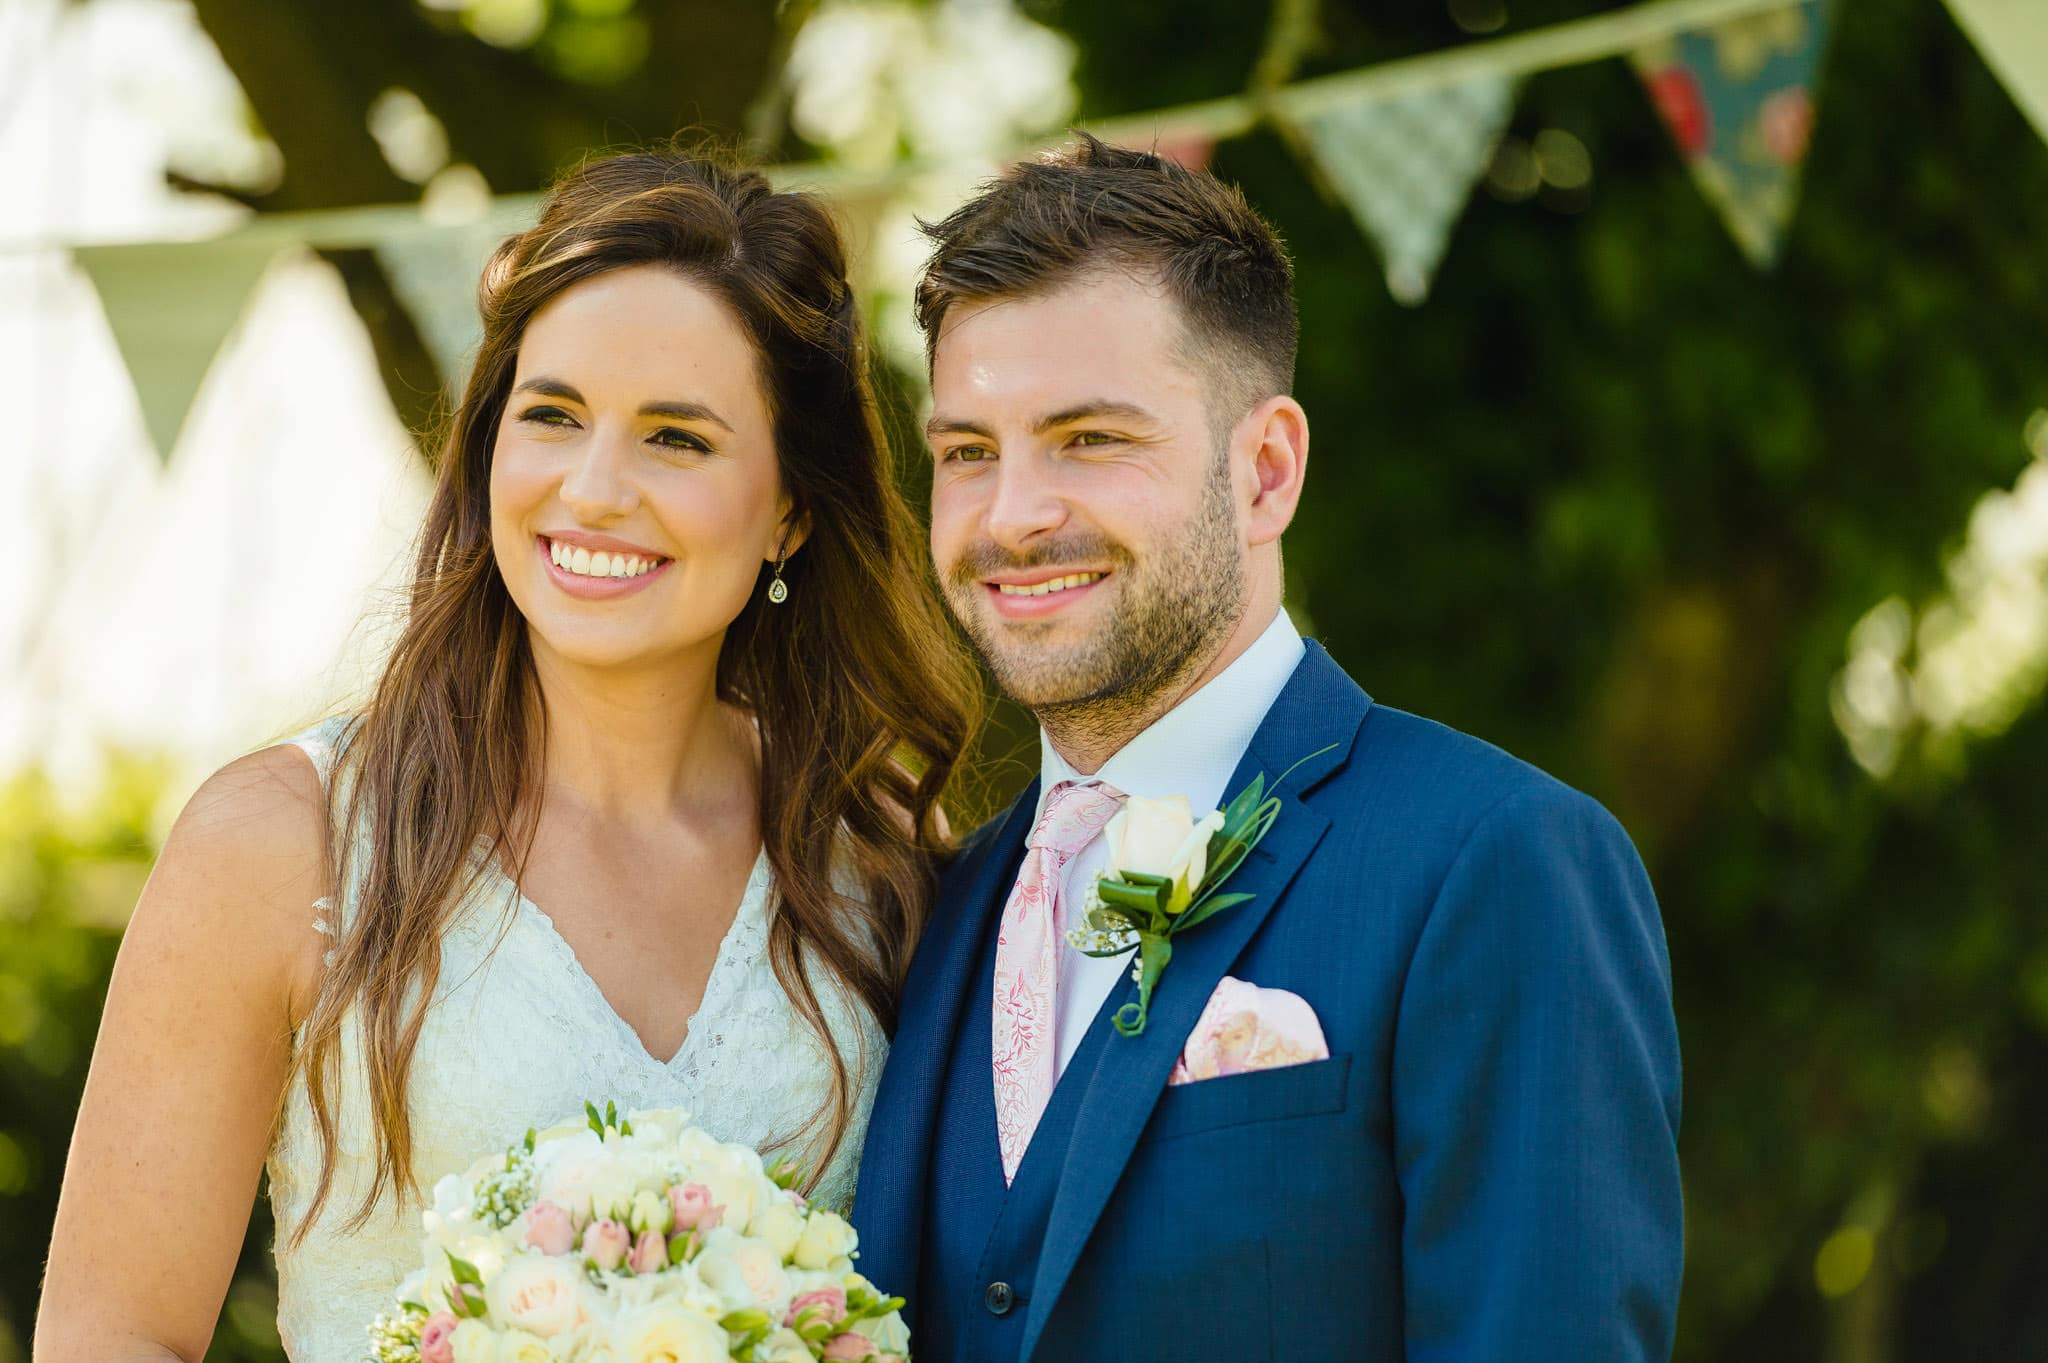 wedding at redhouse barn 104 - Wedding at Redhouse Barn in Stoke Prior, Worcestershire